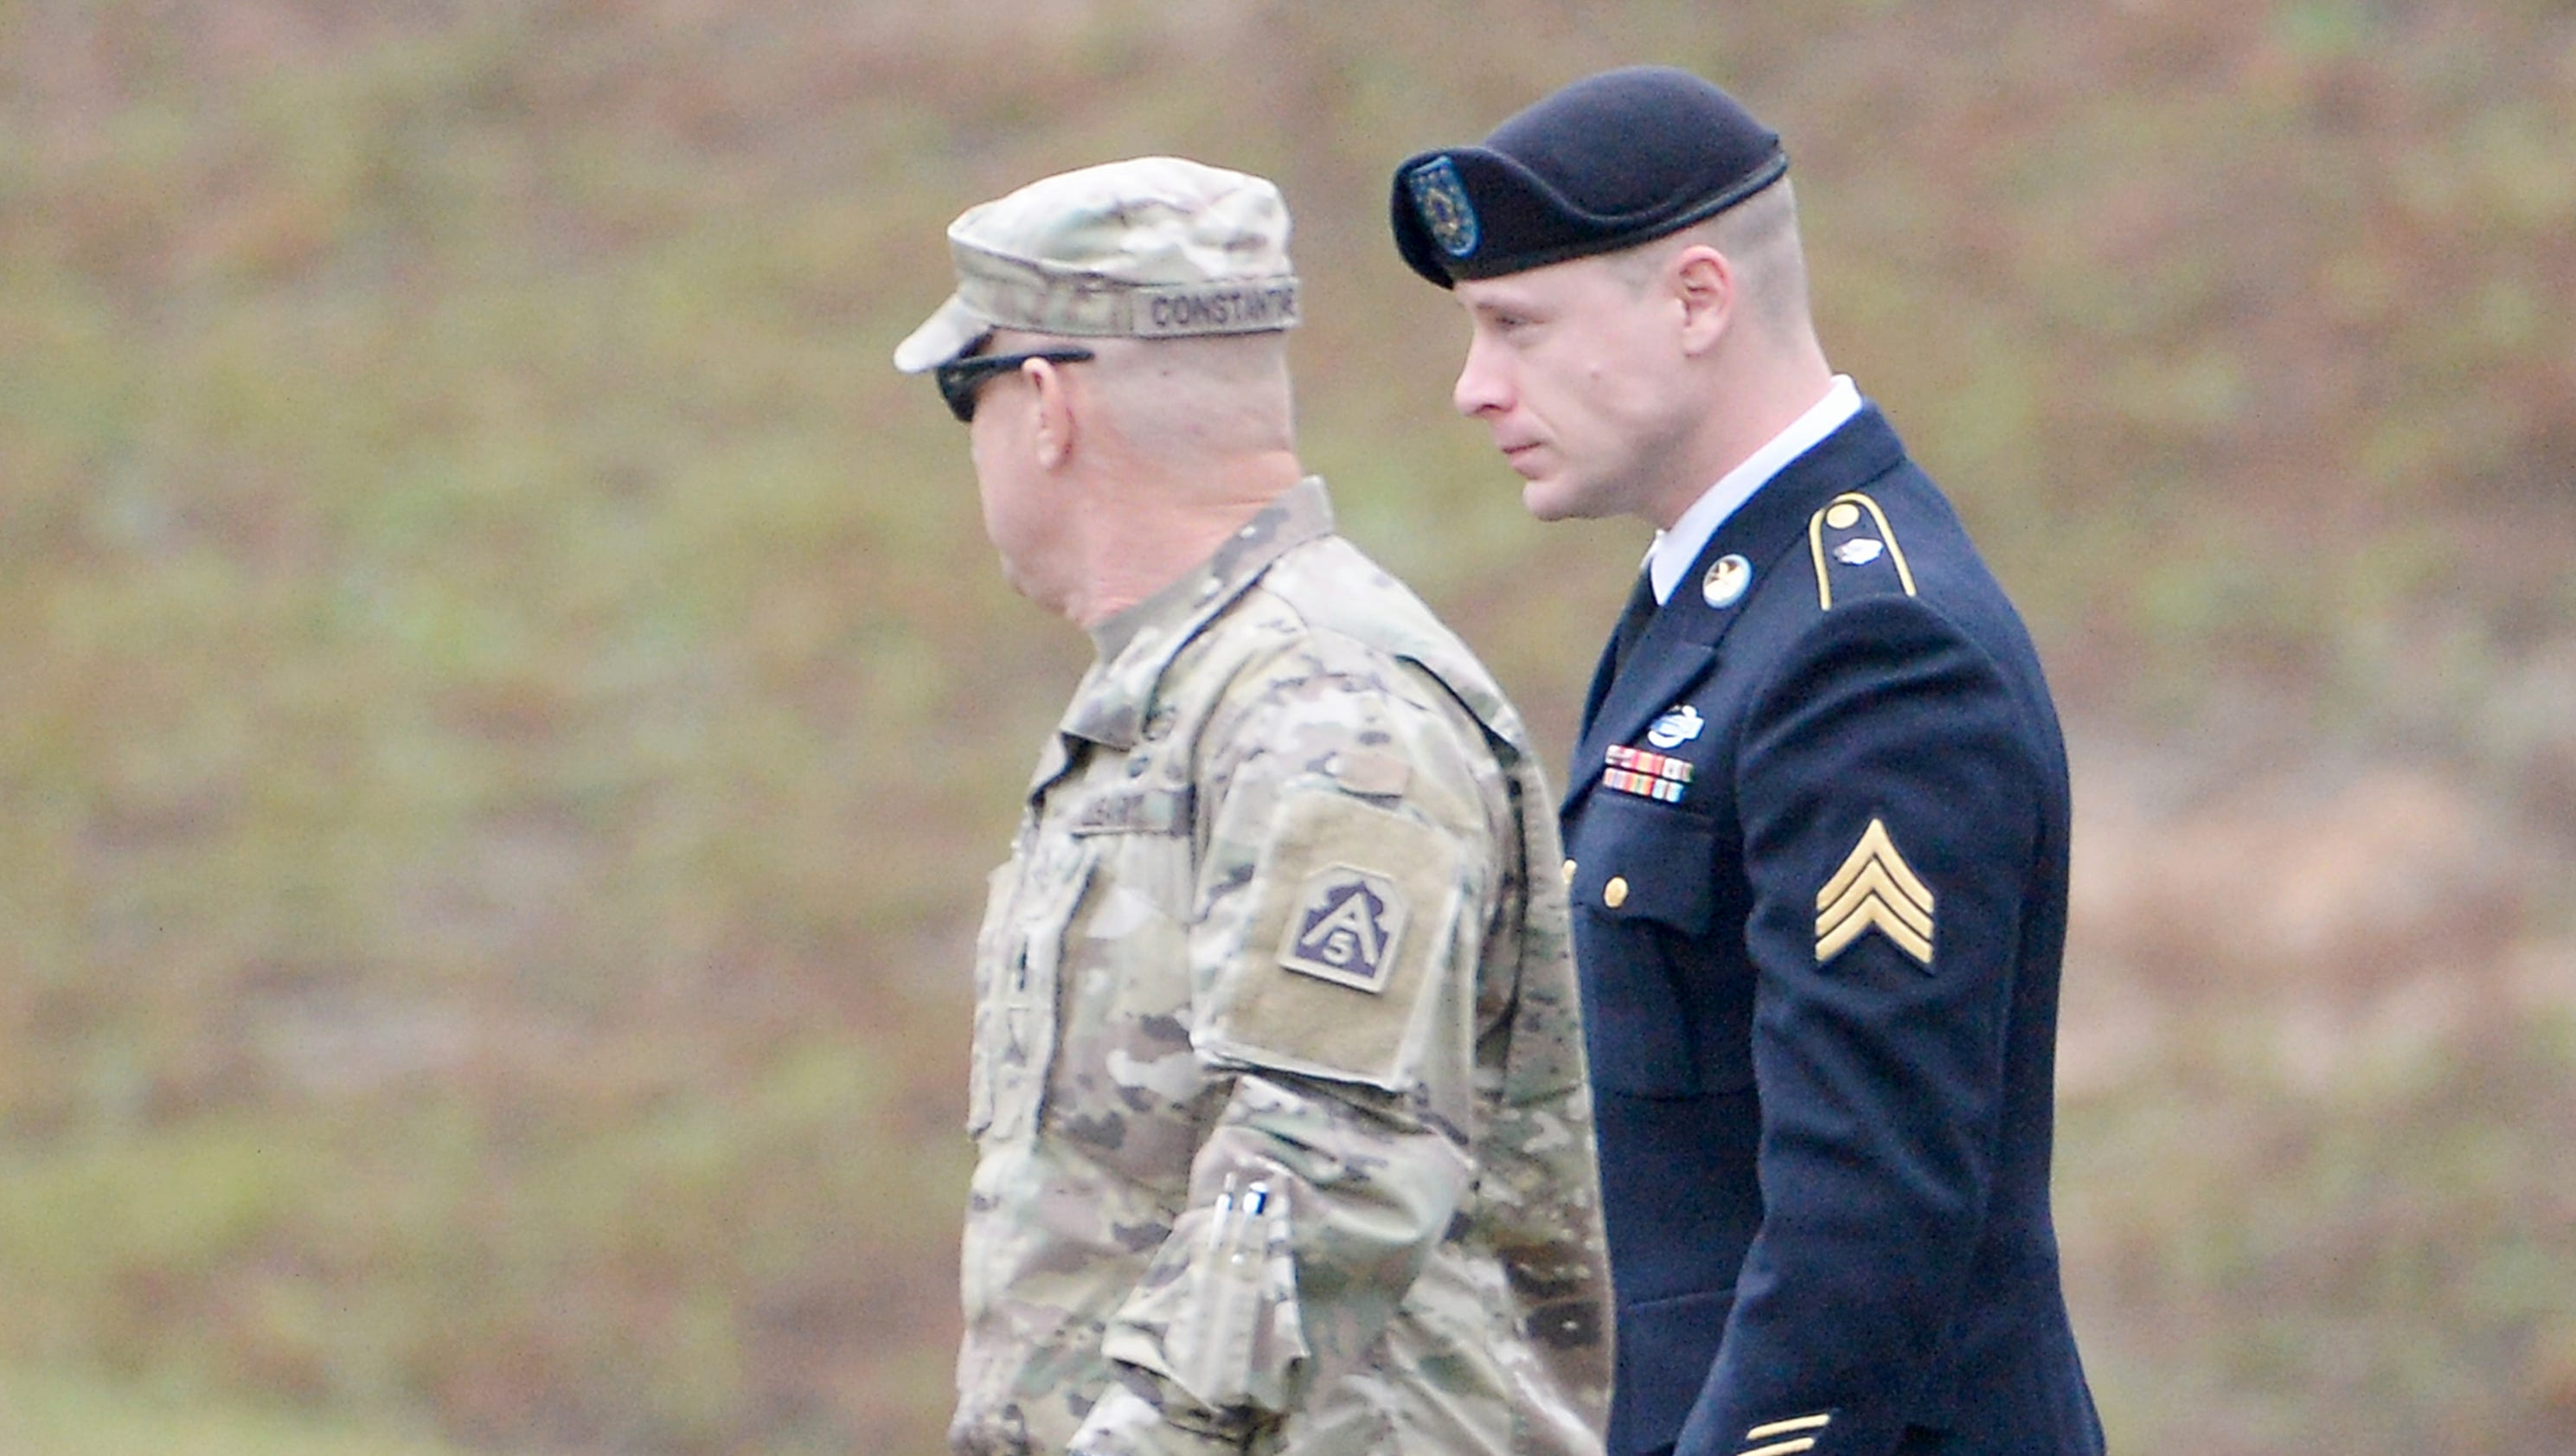 """simaks look at life in desertion """"a deserter either returns voluntarily or he spends the rest of his life looking over his shoulder wondering when he'll be discovered,"""" said maj anne edgecombe, an army spokeswoman."""